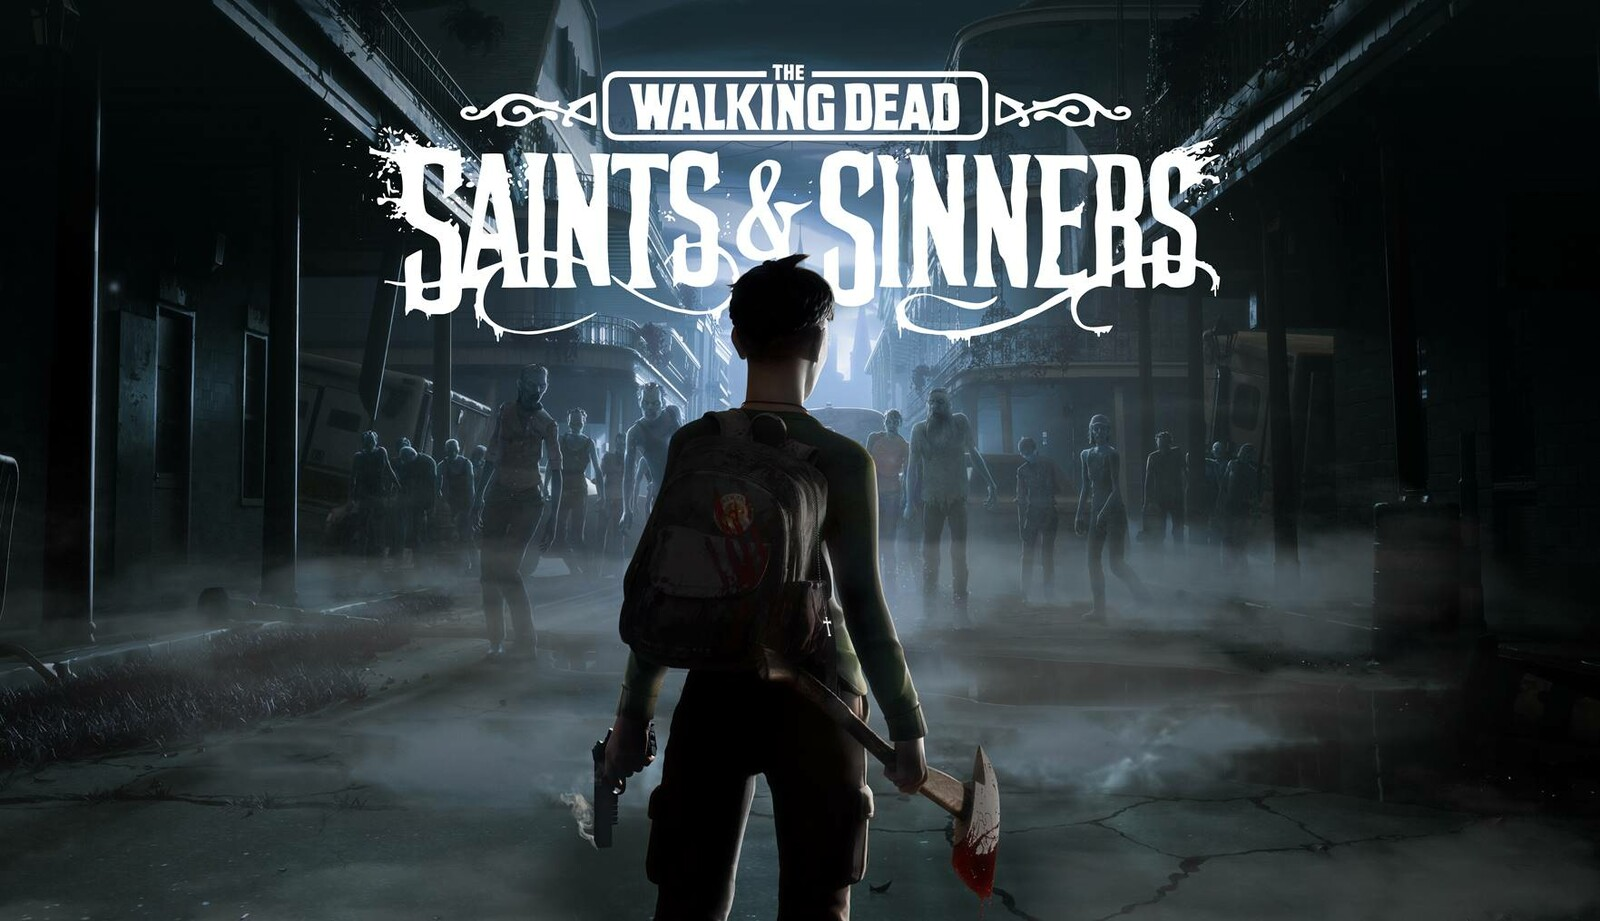 The Walking Dead : Saints & Sinners -Keyart & Coverart